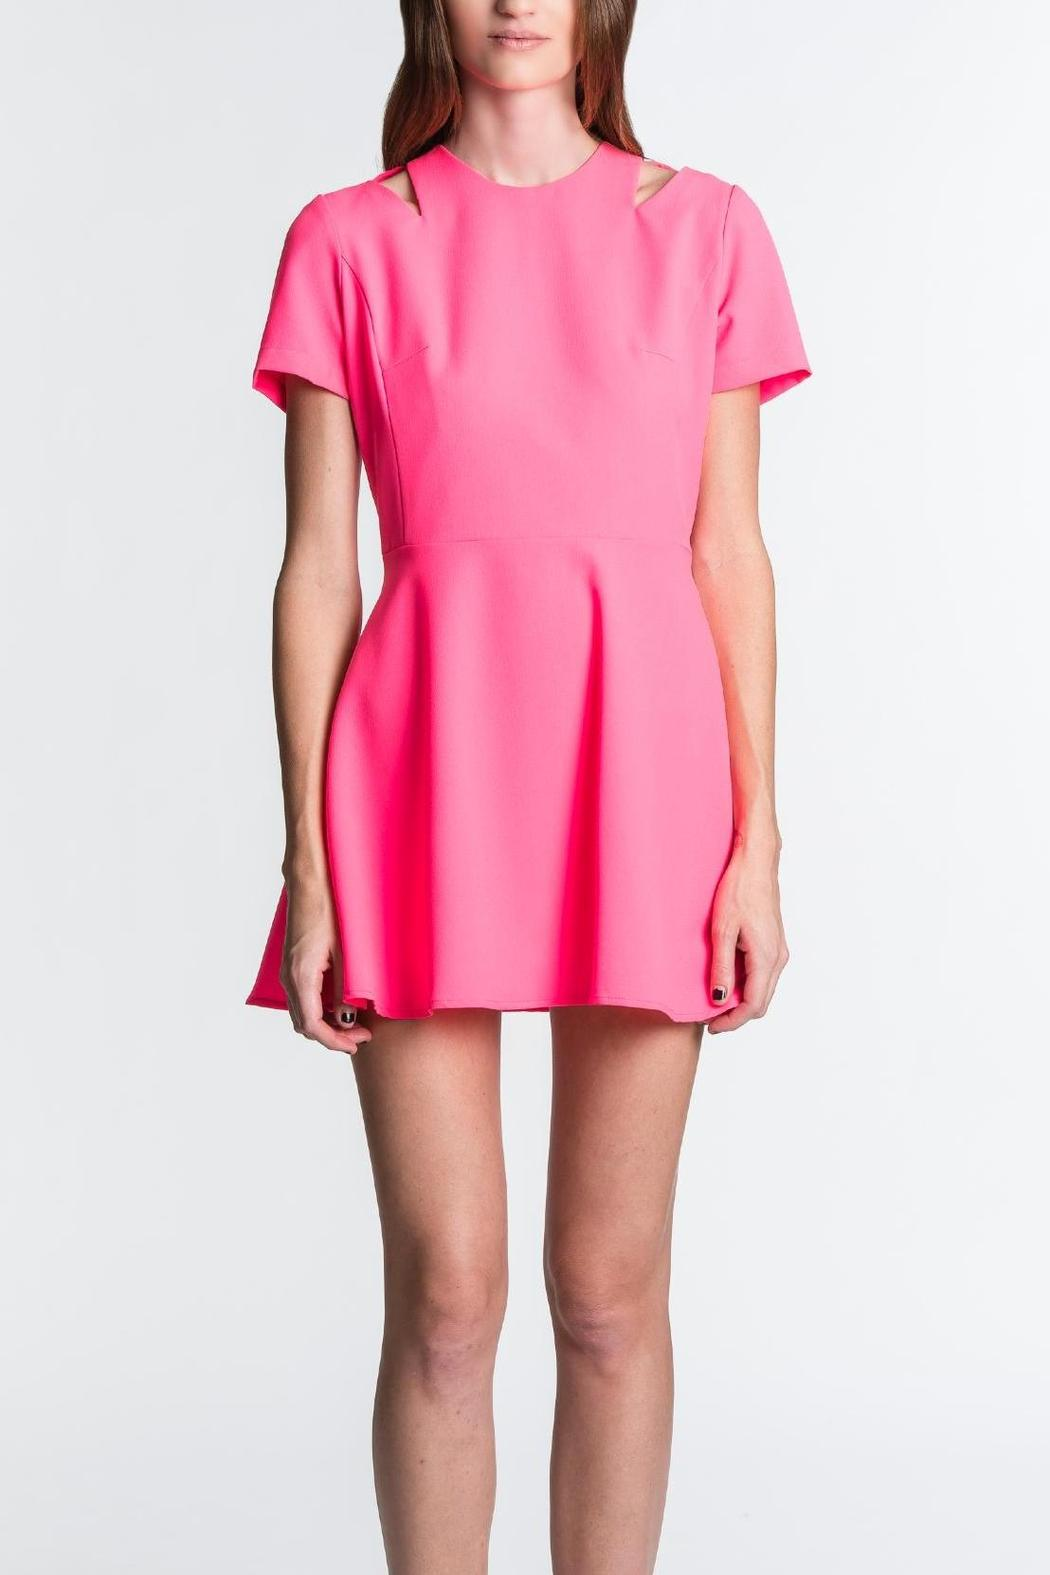 Blaque Label Pink Swing Dress - Front Cropped Image